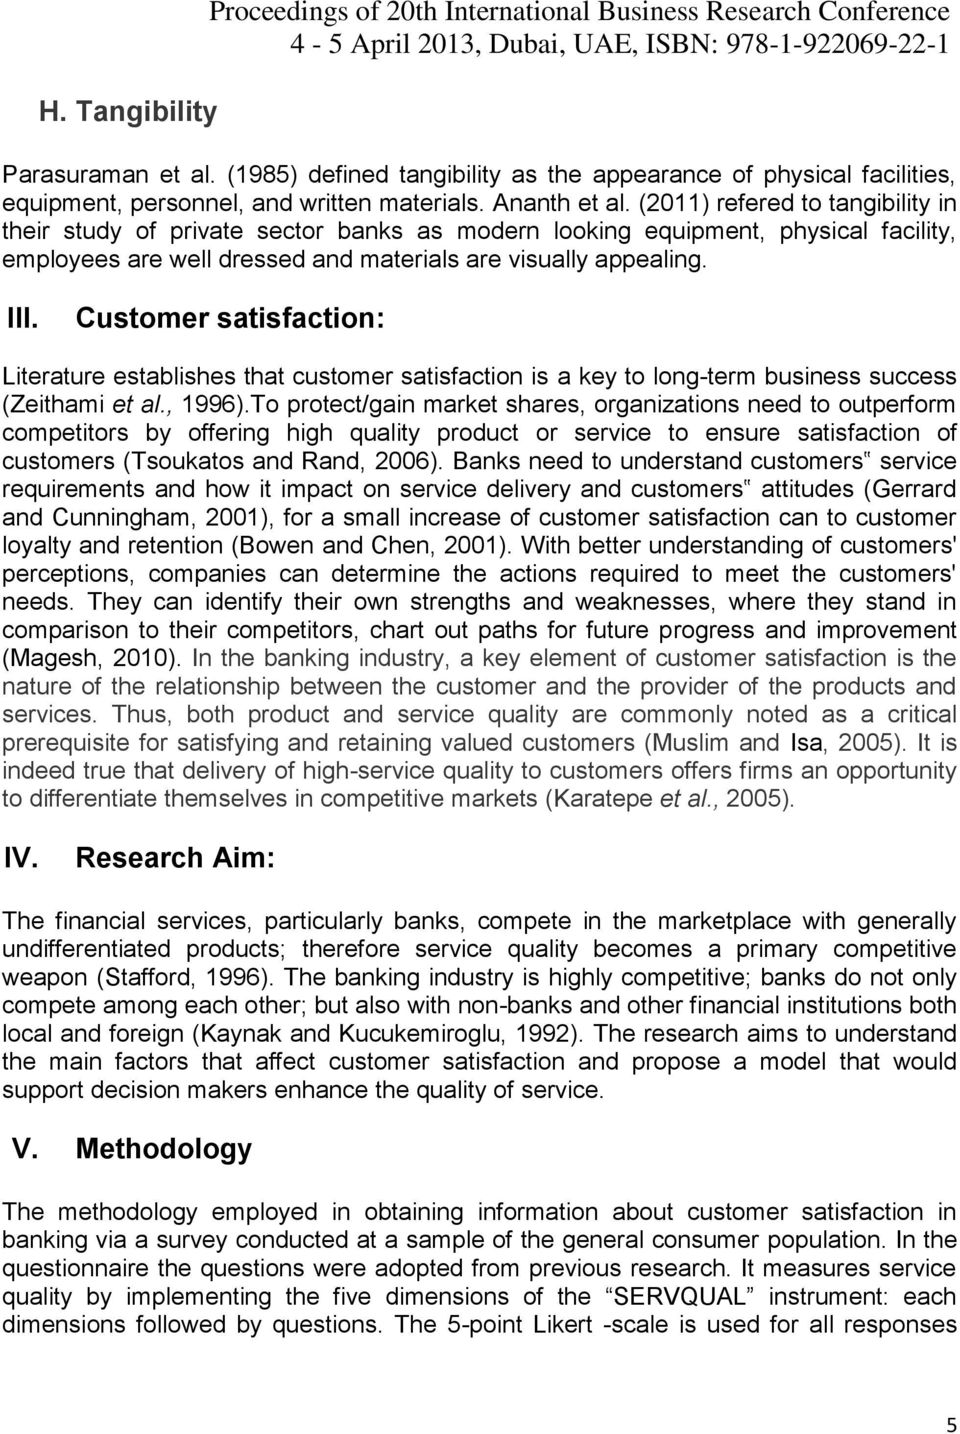 literature review on customer relationship essay What is the difference between a literature review and an analytical essay  a literature review is not a  48 out of 5 customer  relationship developed.